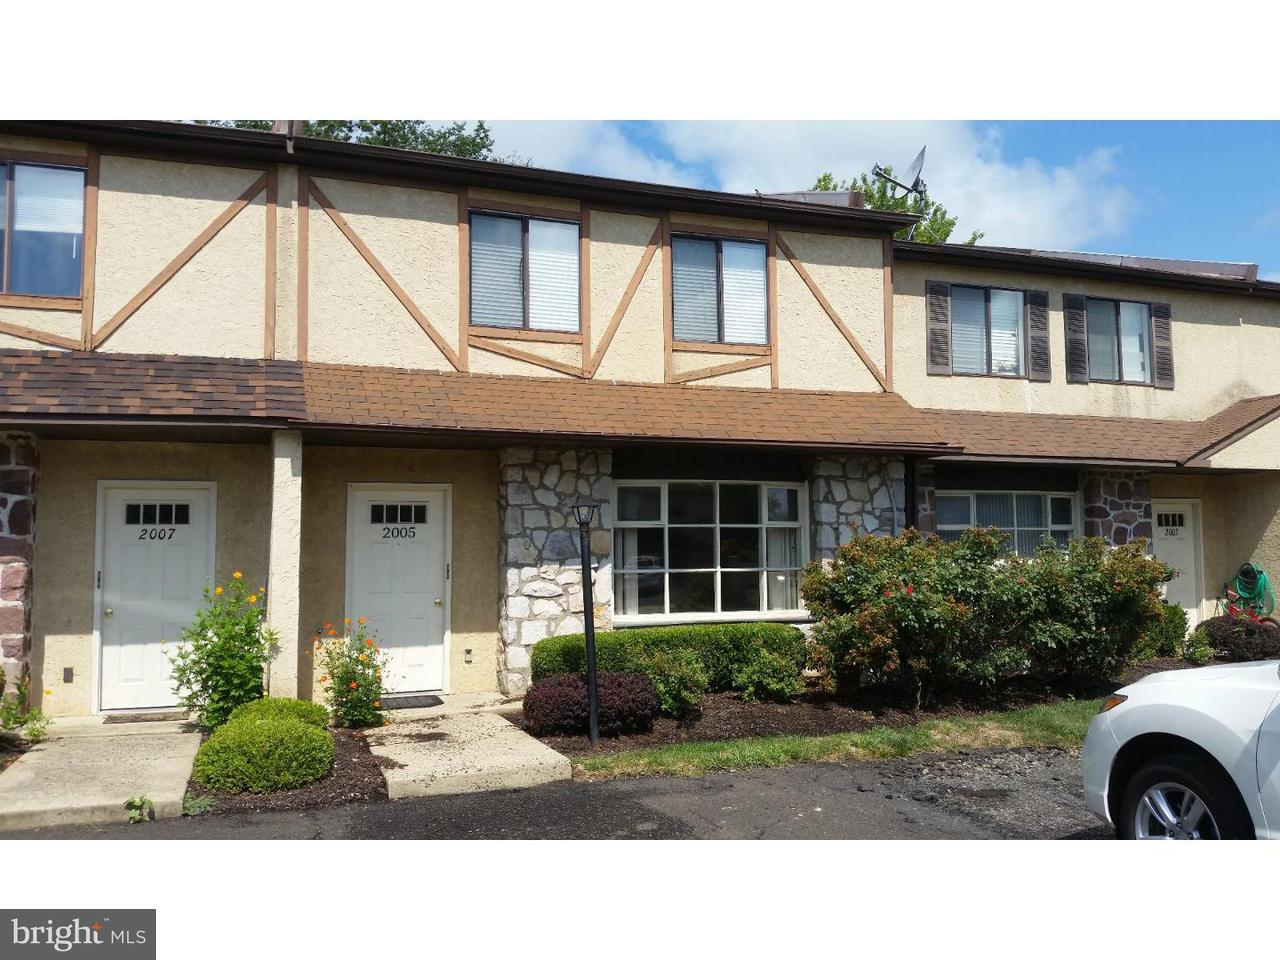 Duplex for Rent at 2005 JASON DR #A Huntingdon Valley, Pennsylvania 19006 United States